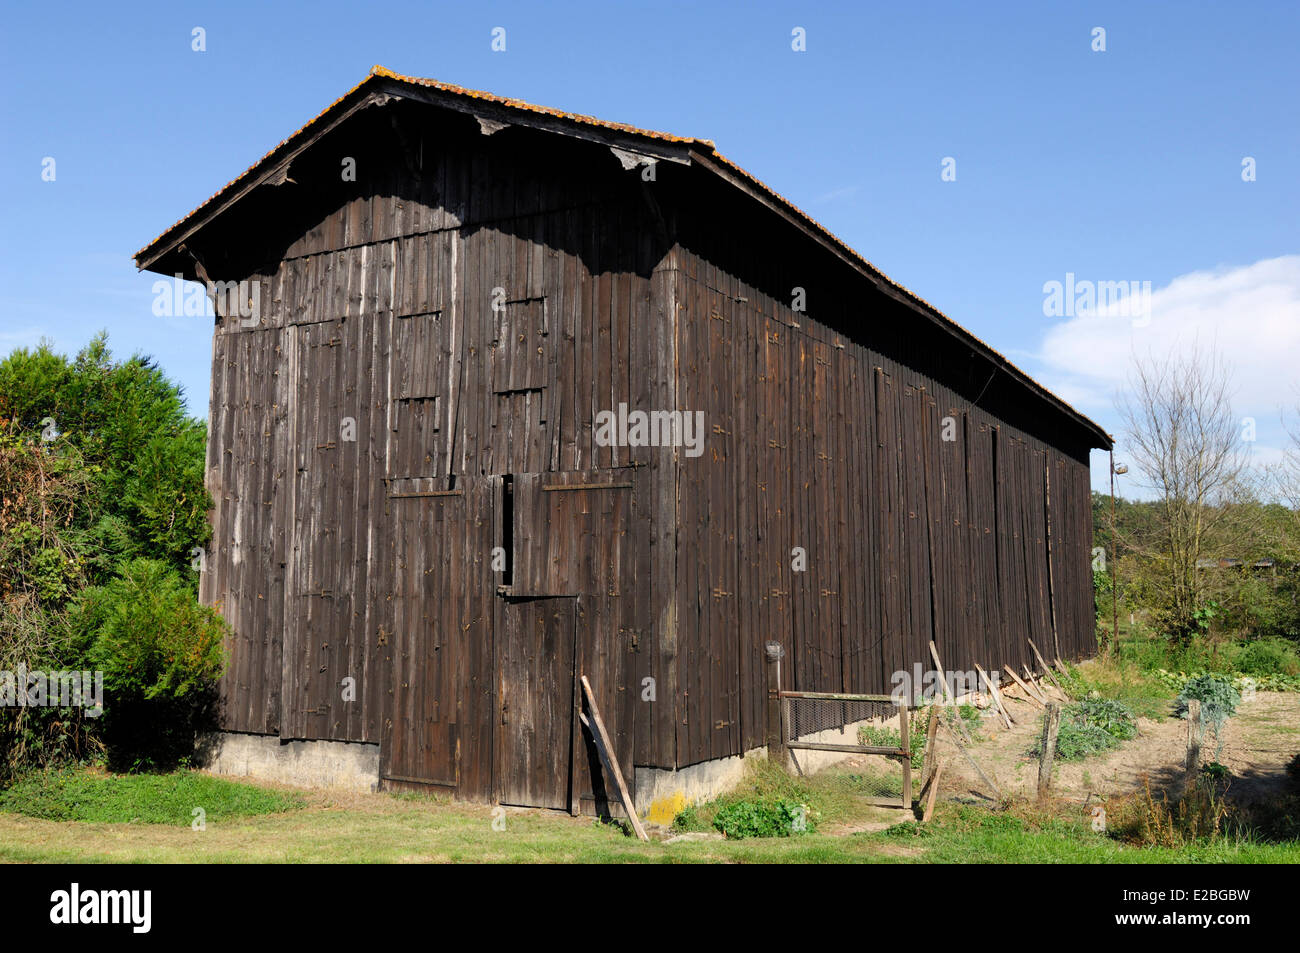 France, Gironde, Puybarban, Tobacco Barn In The Garden Of The Suberbi Farm